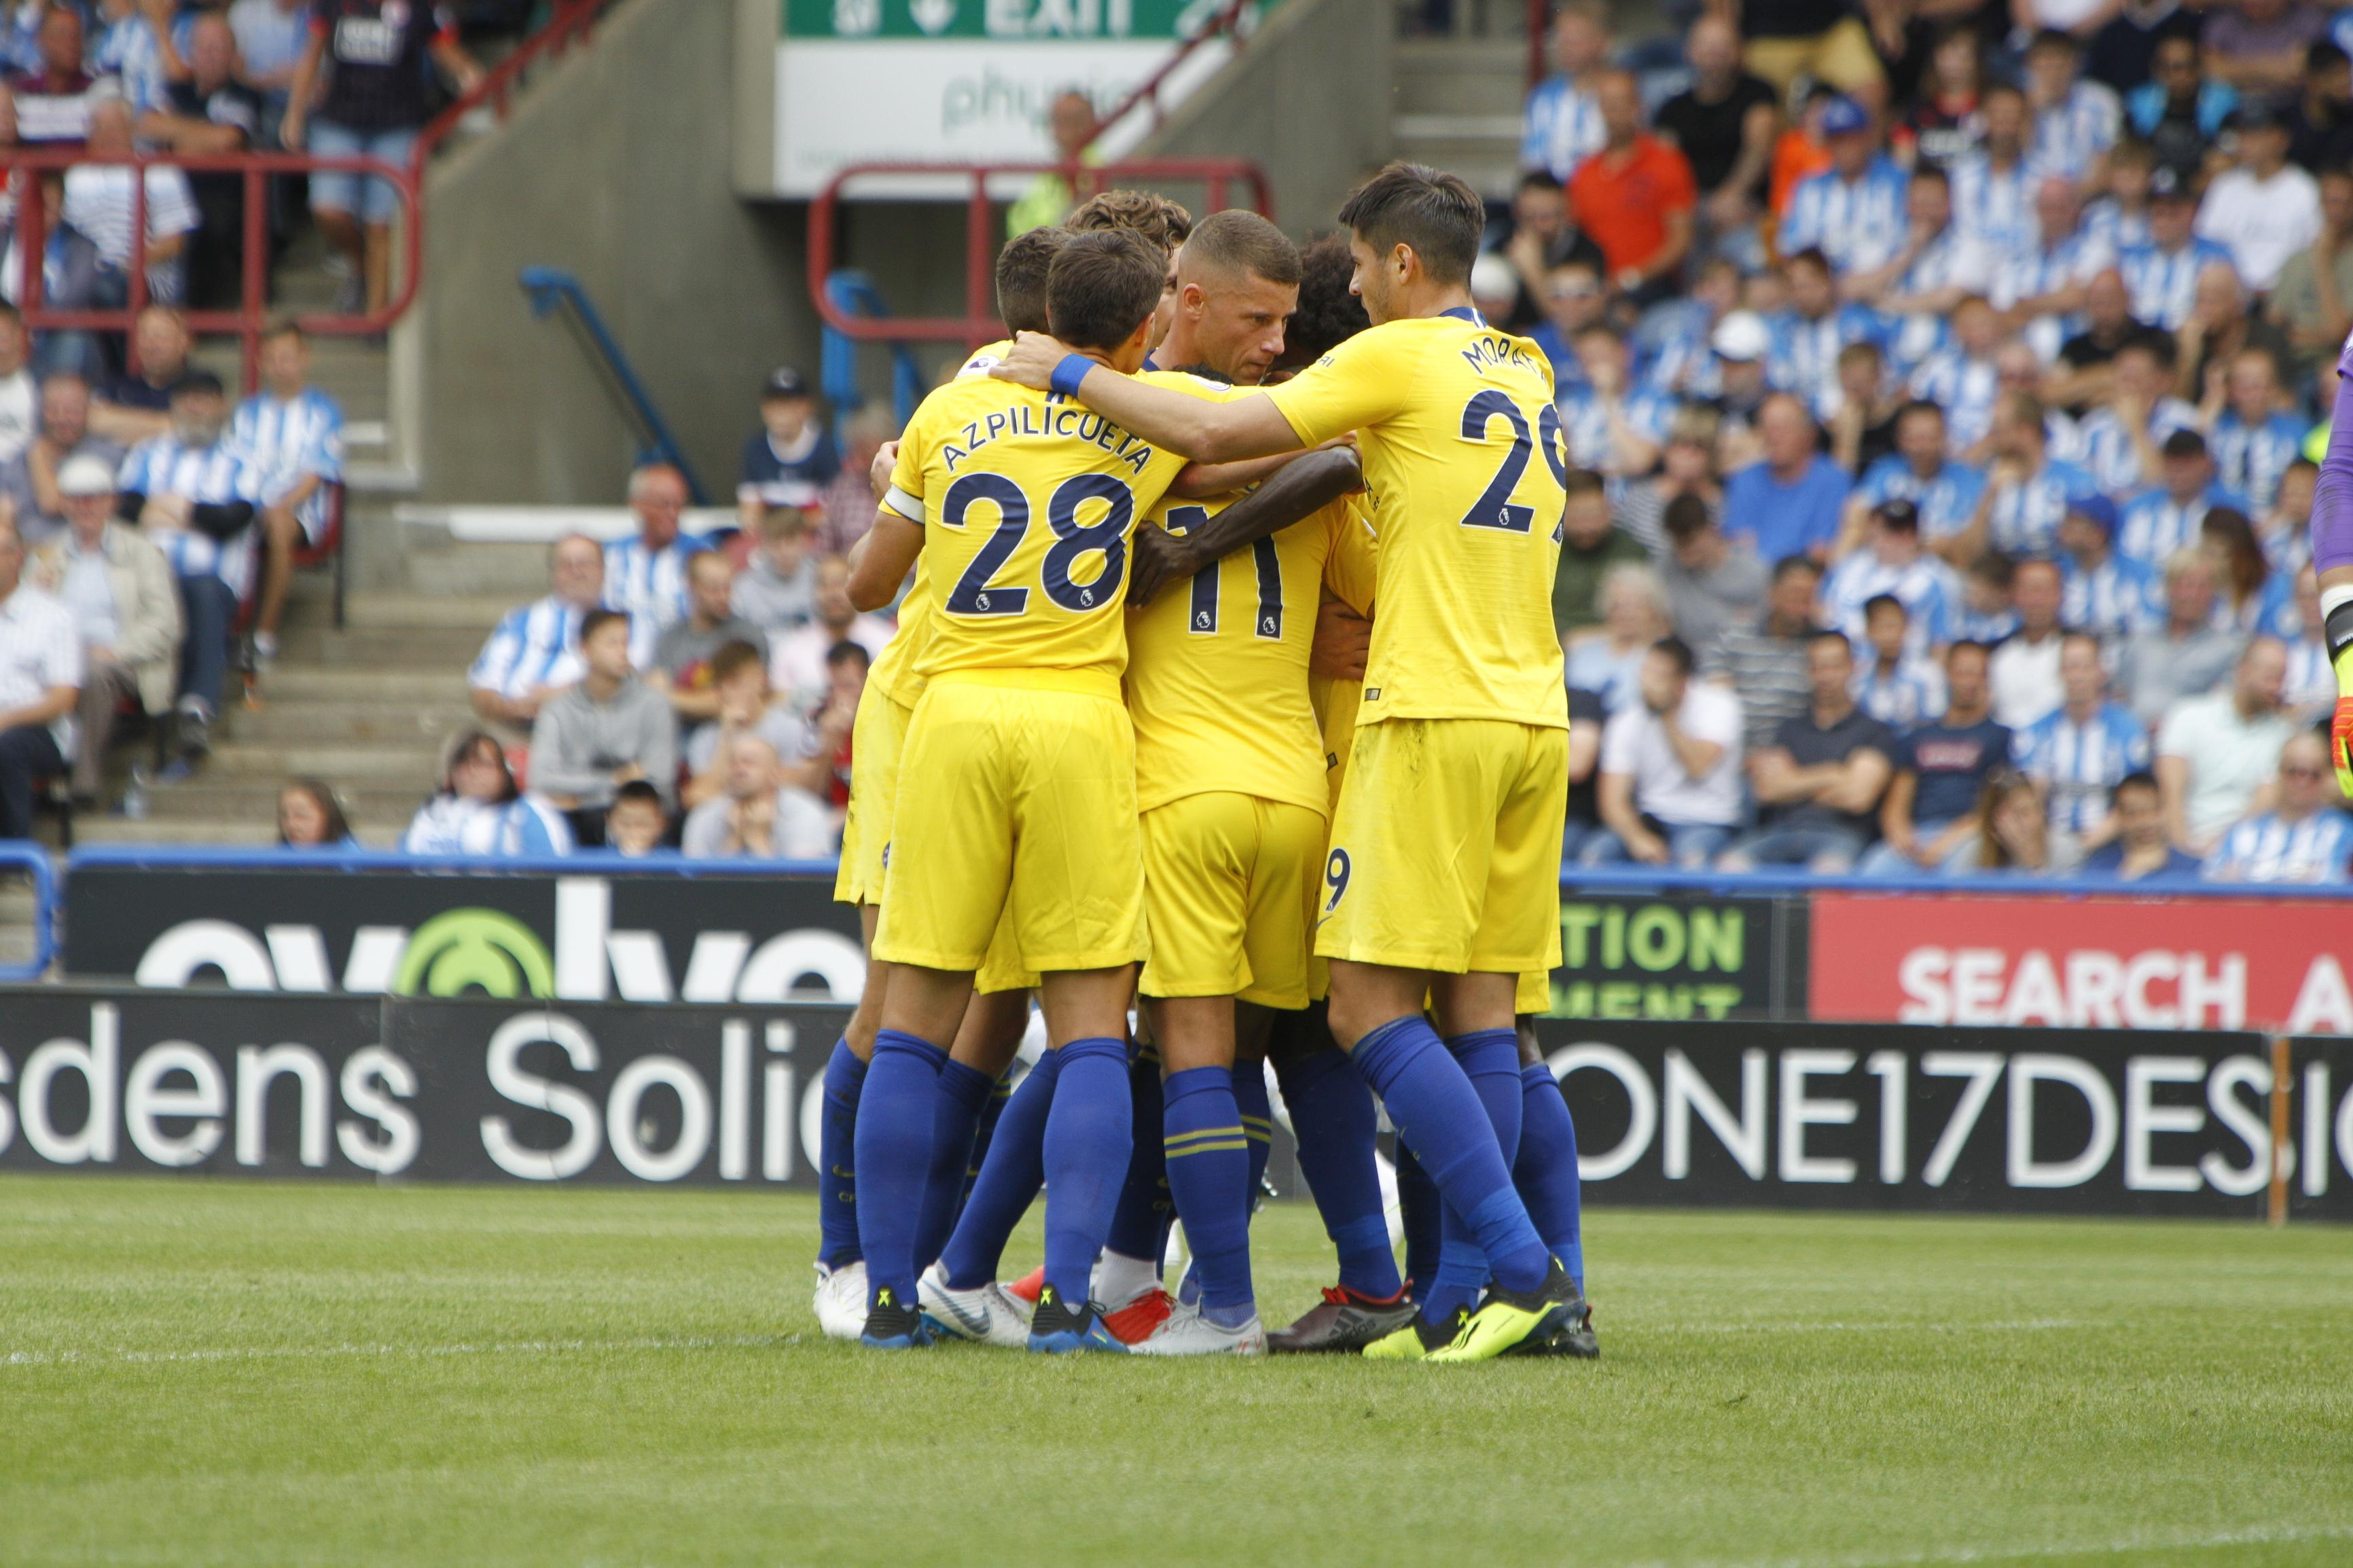 Chelsea celebrated Premier League debutant Jorginho netting from the spot